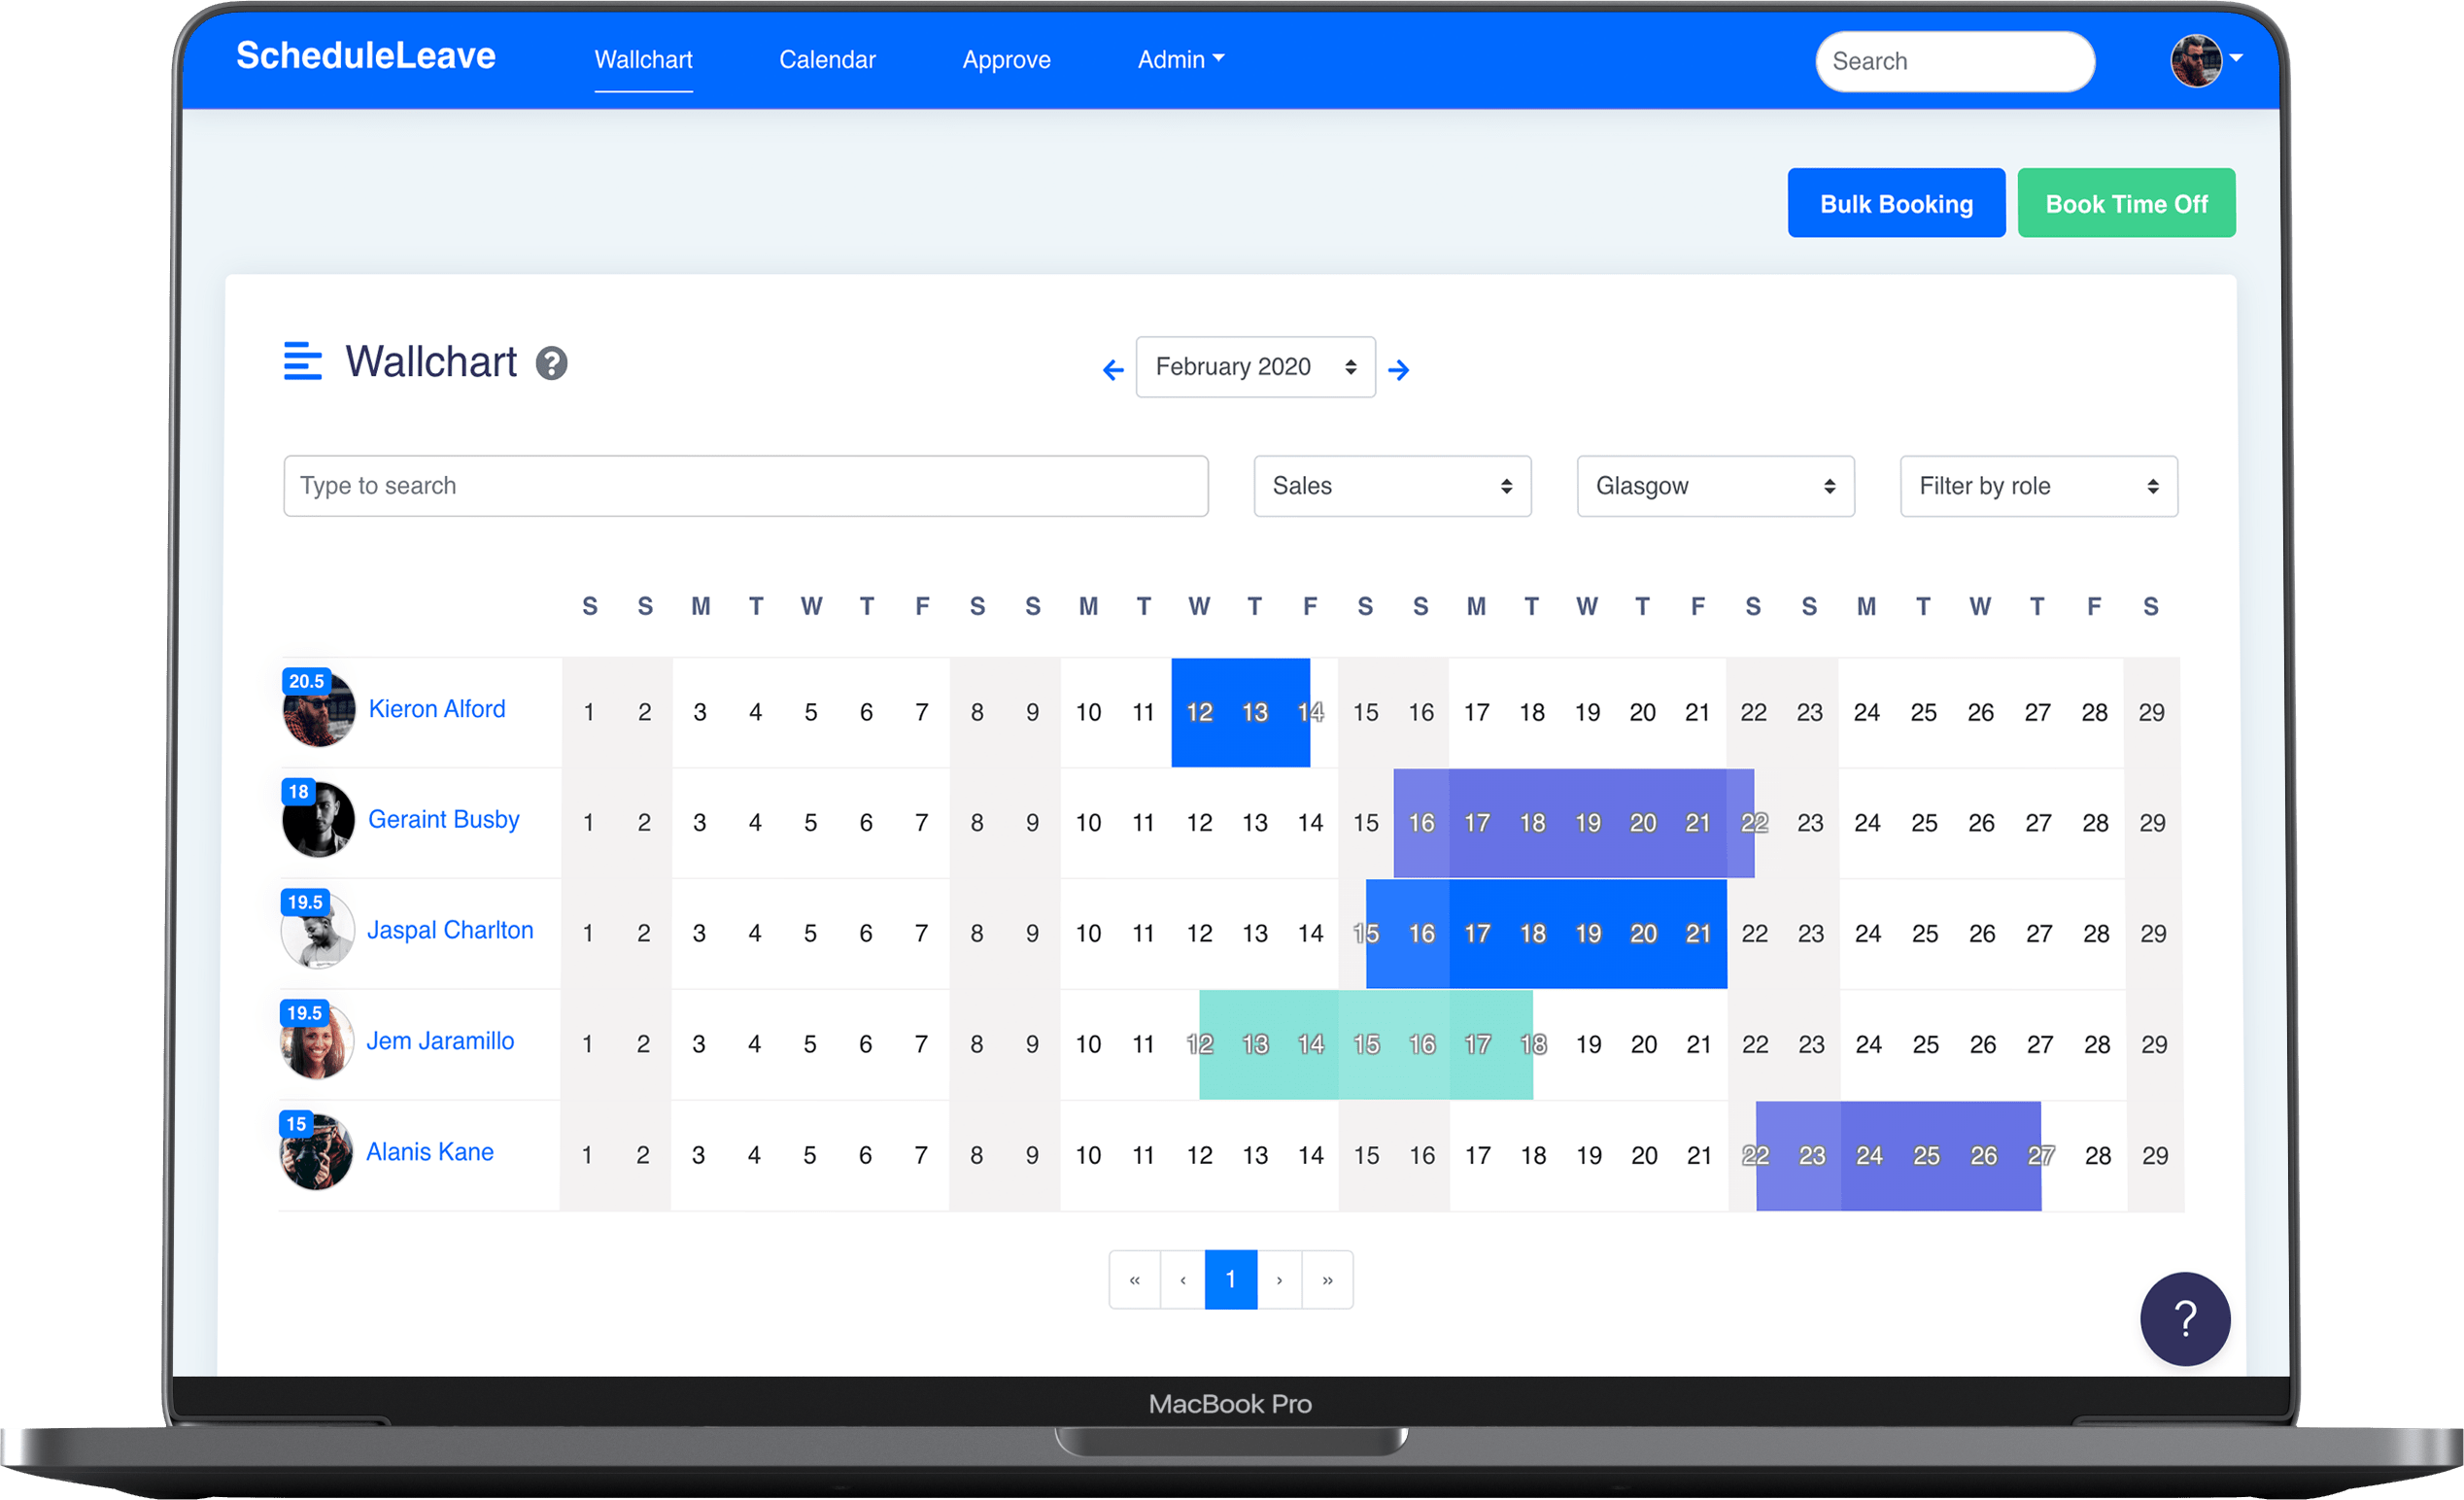 ScheduleLeave - Wallchart to view employee holiday booked